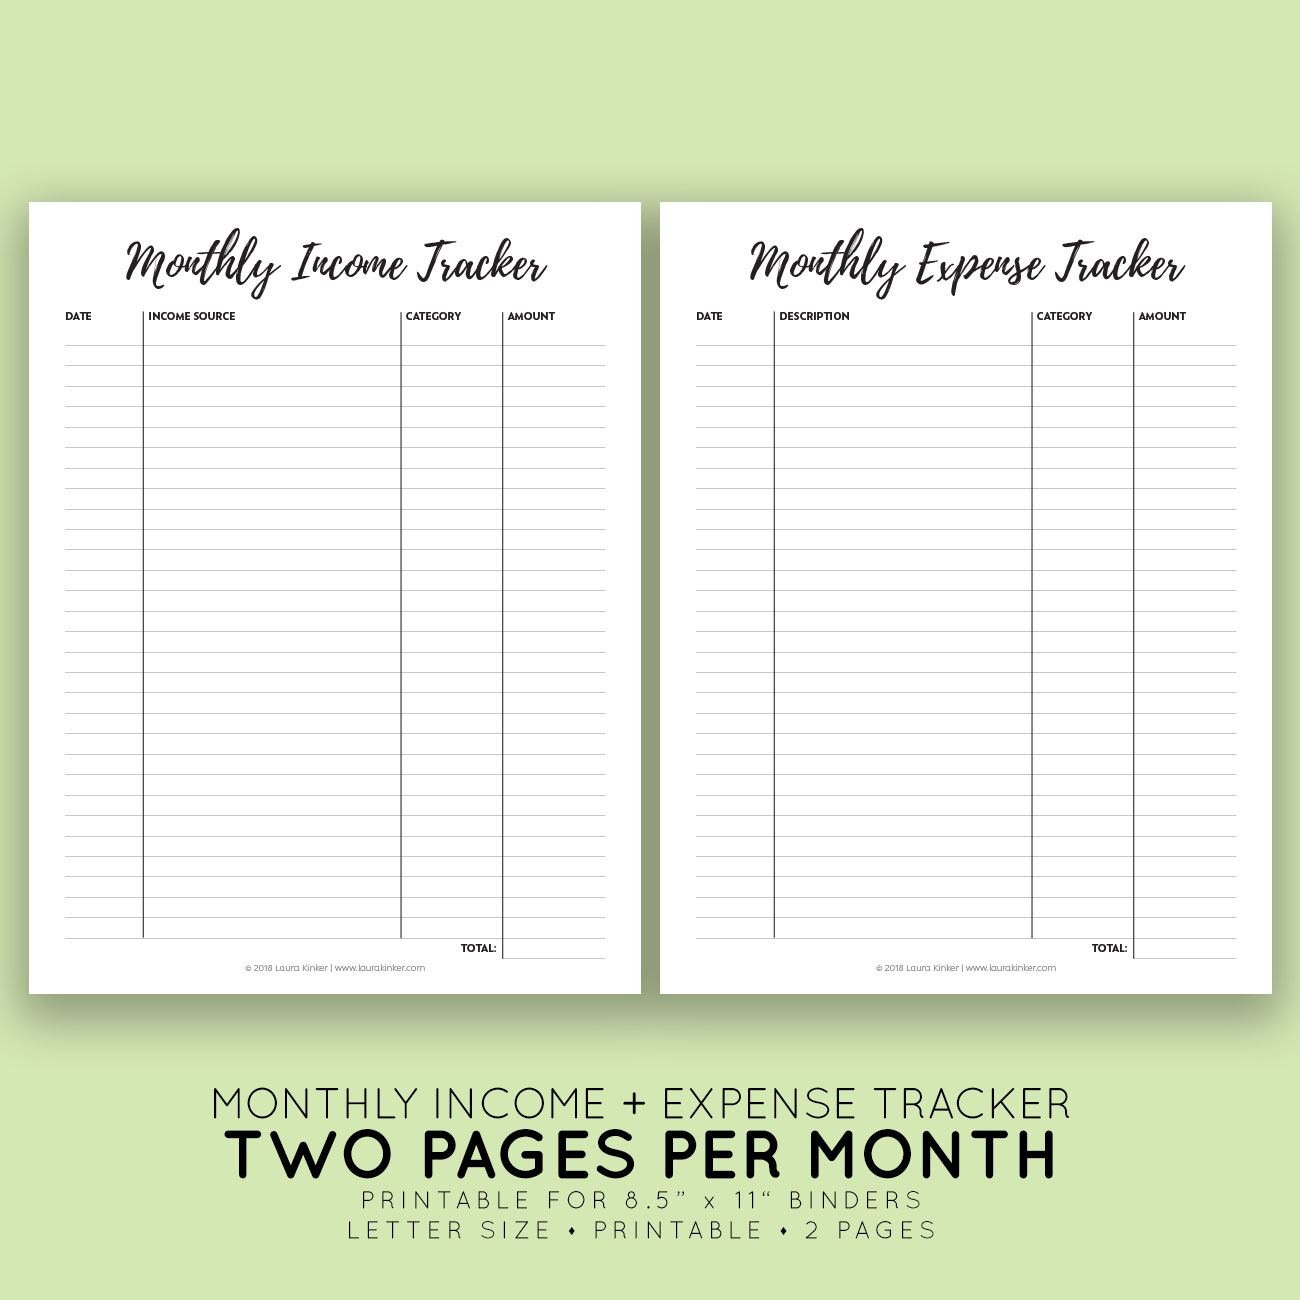 Printable Monthly Income Expense Tracker